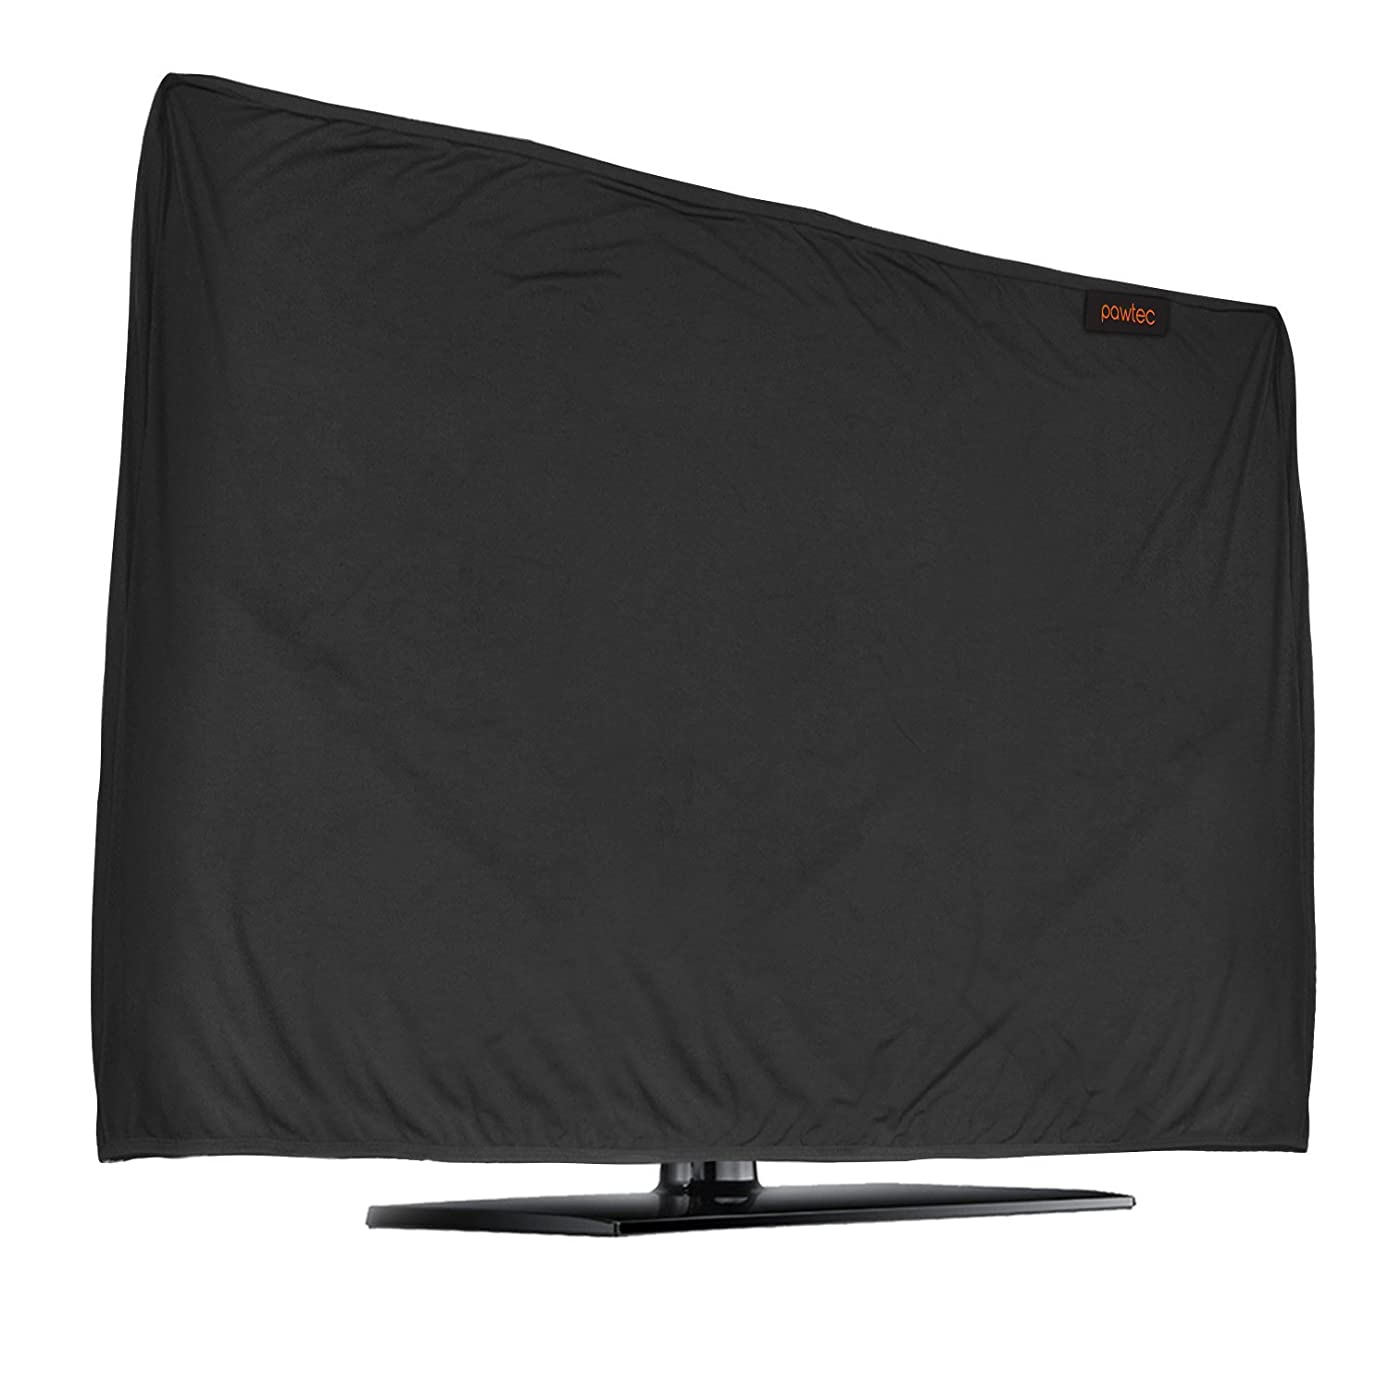 Lightweight Flat Screen TV Cover - Full Body Stretchable Lycra Protection Sleeve - Fits 47-50